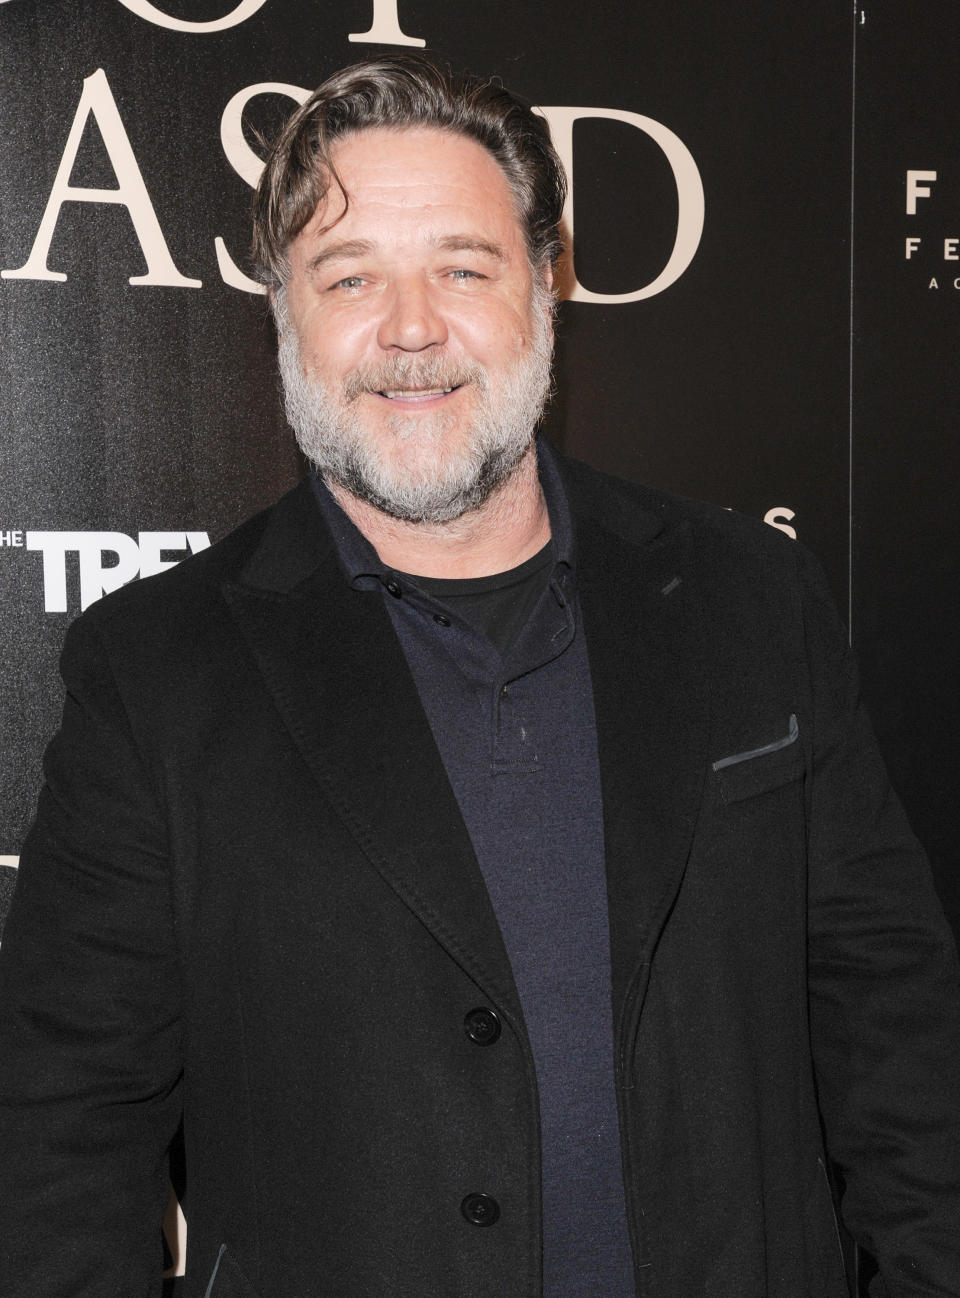 Russell Crowe attends the New York screening of Boy Erased at the Whitby Hotel Manhattan.